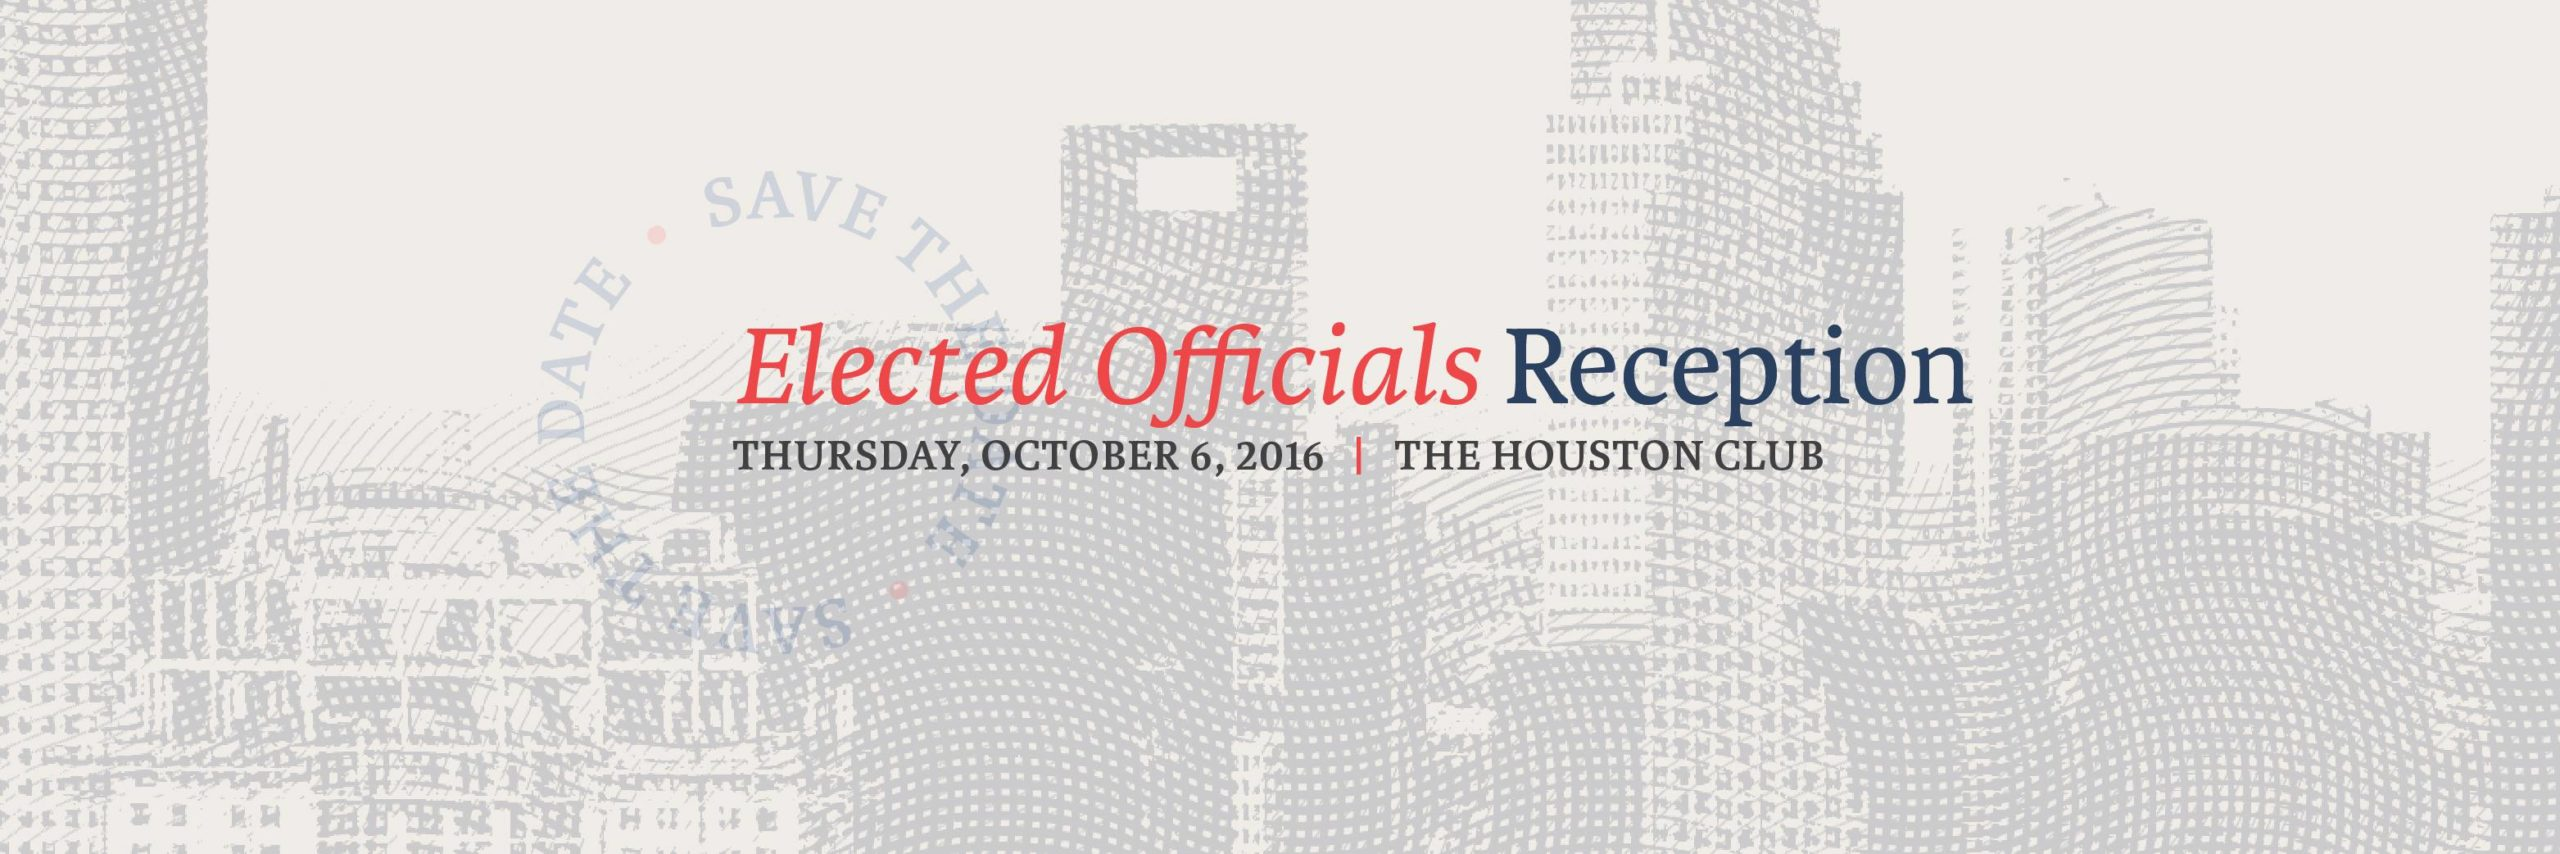 HHCC Elected Officials Reception on Thursday, October 6, 2016 (hispanichouston.com)